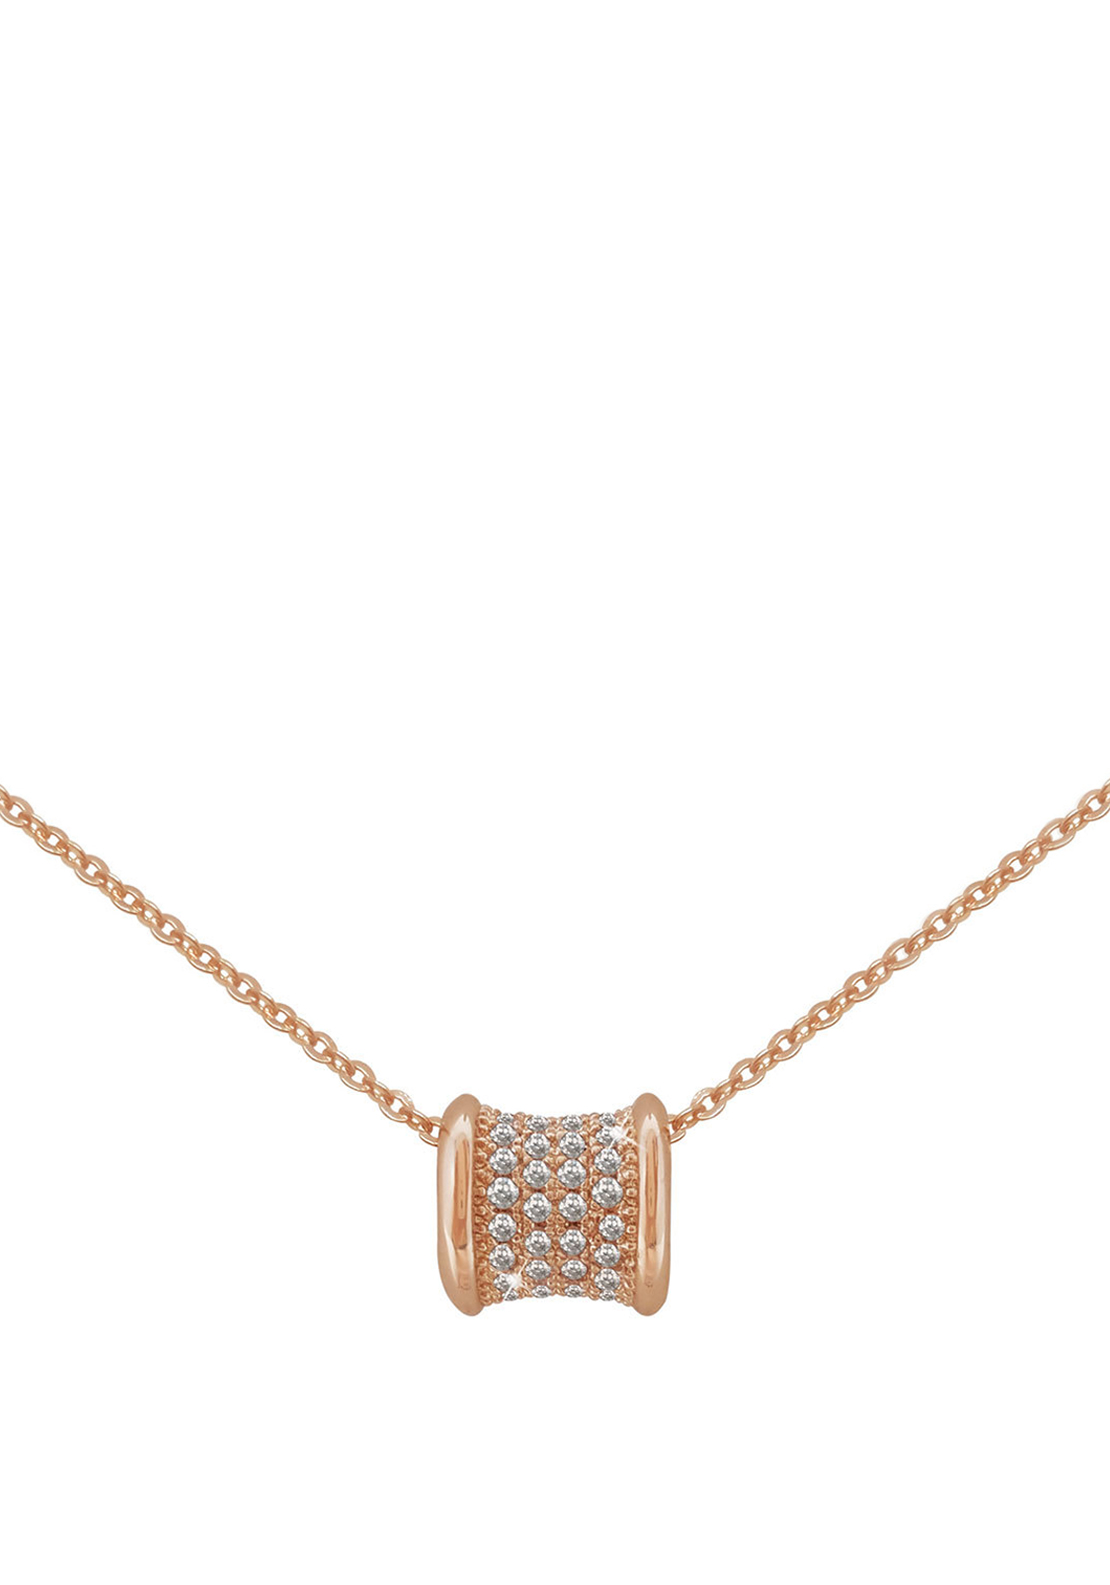 Tipperary Crystal Pave Set Barrel Pendant Necklace, Rose Gold